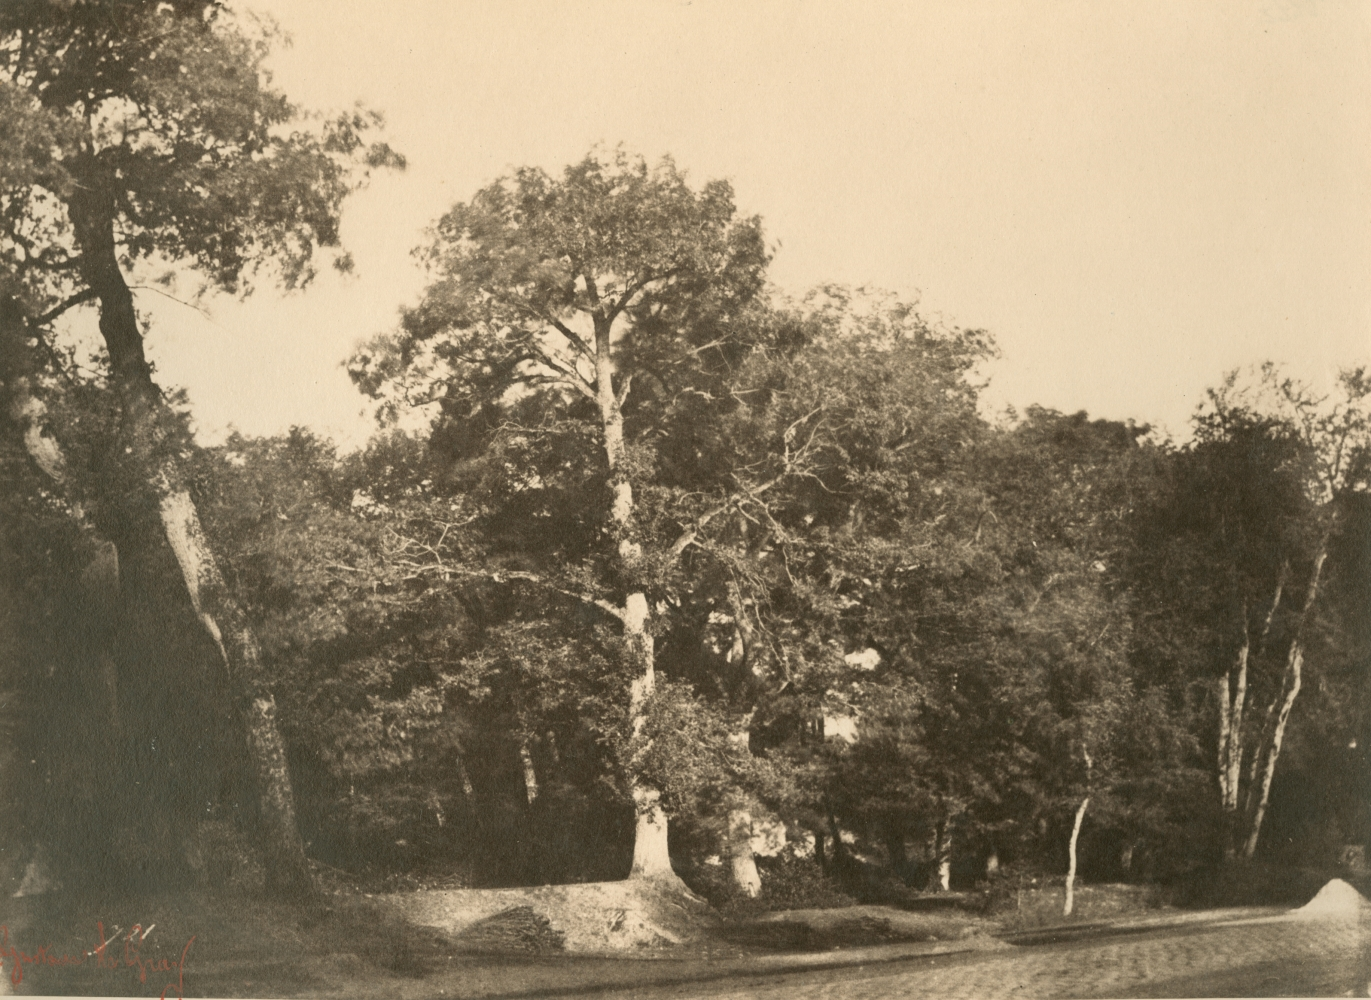 """Gustave LE GRAY (French, 1820-1884) """"Le Hêtre, Fontainebleau""""*, early 1850s Albumen or coated salt print from a waxed paper negative 20.0 x 27.2 cm mounted on 41.7 x 56.8 cm paper Numbered """"721"""" in the negative. Photographer's red signature stamp. Titled with """"No 721"""" in pencil, and """"721"""" in ink, with photographer's oval blindstamp on the mount."""